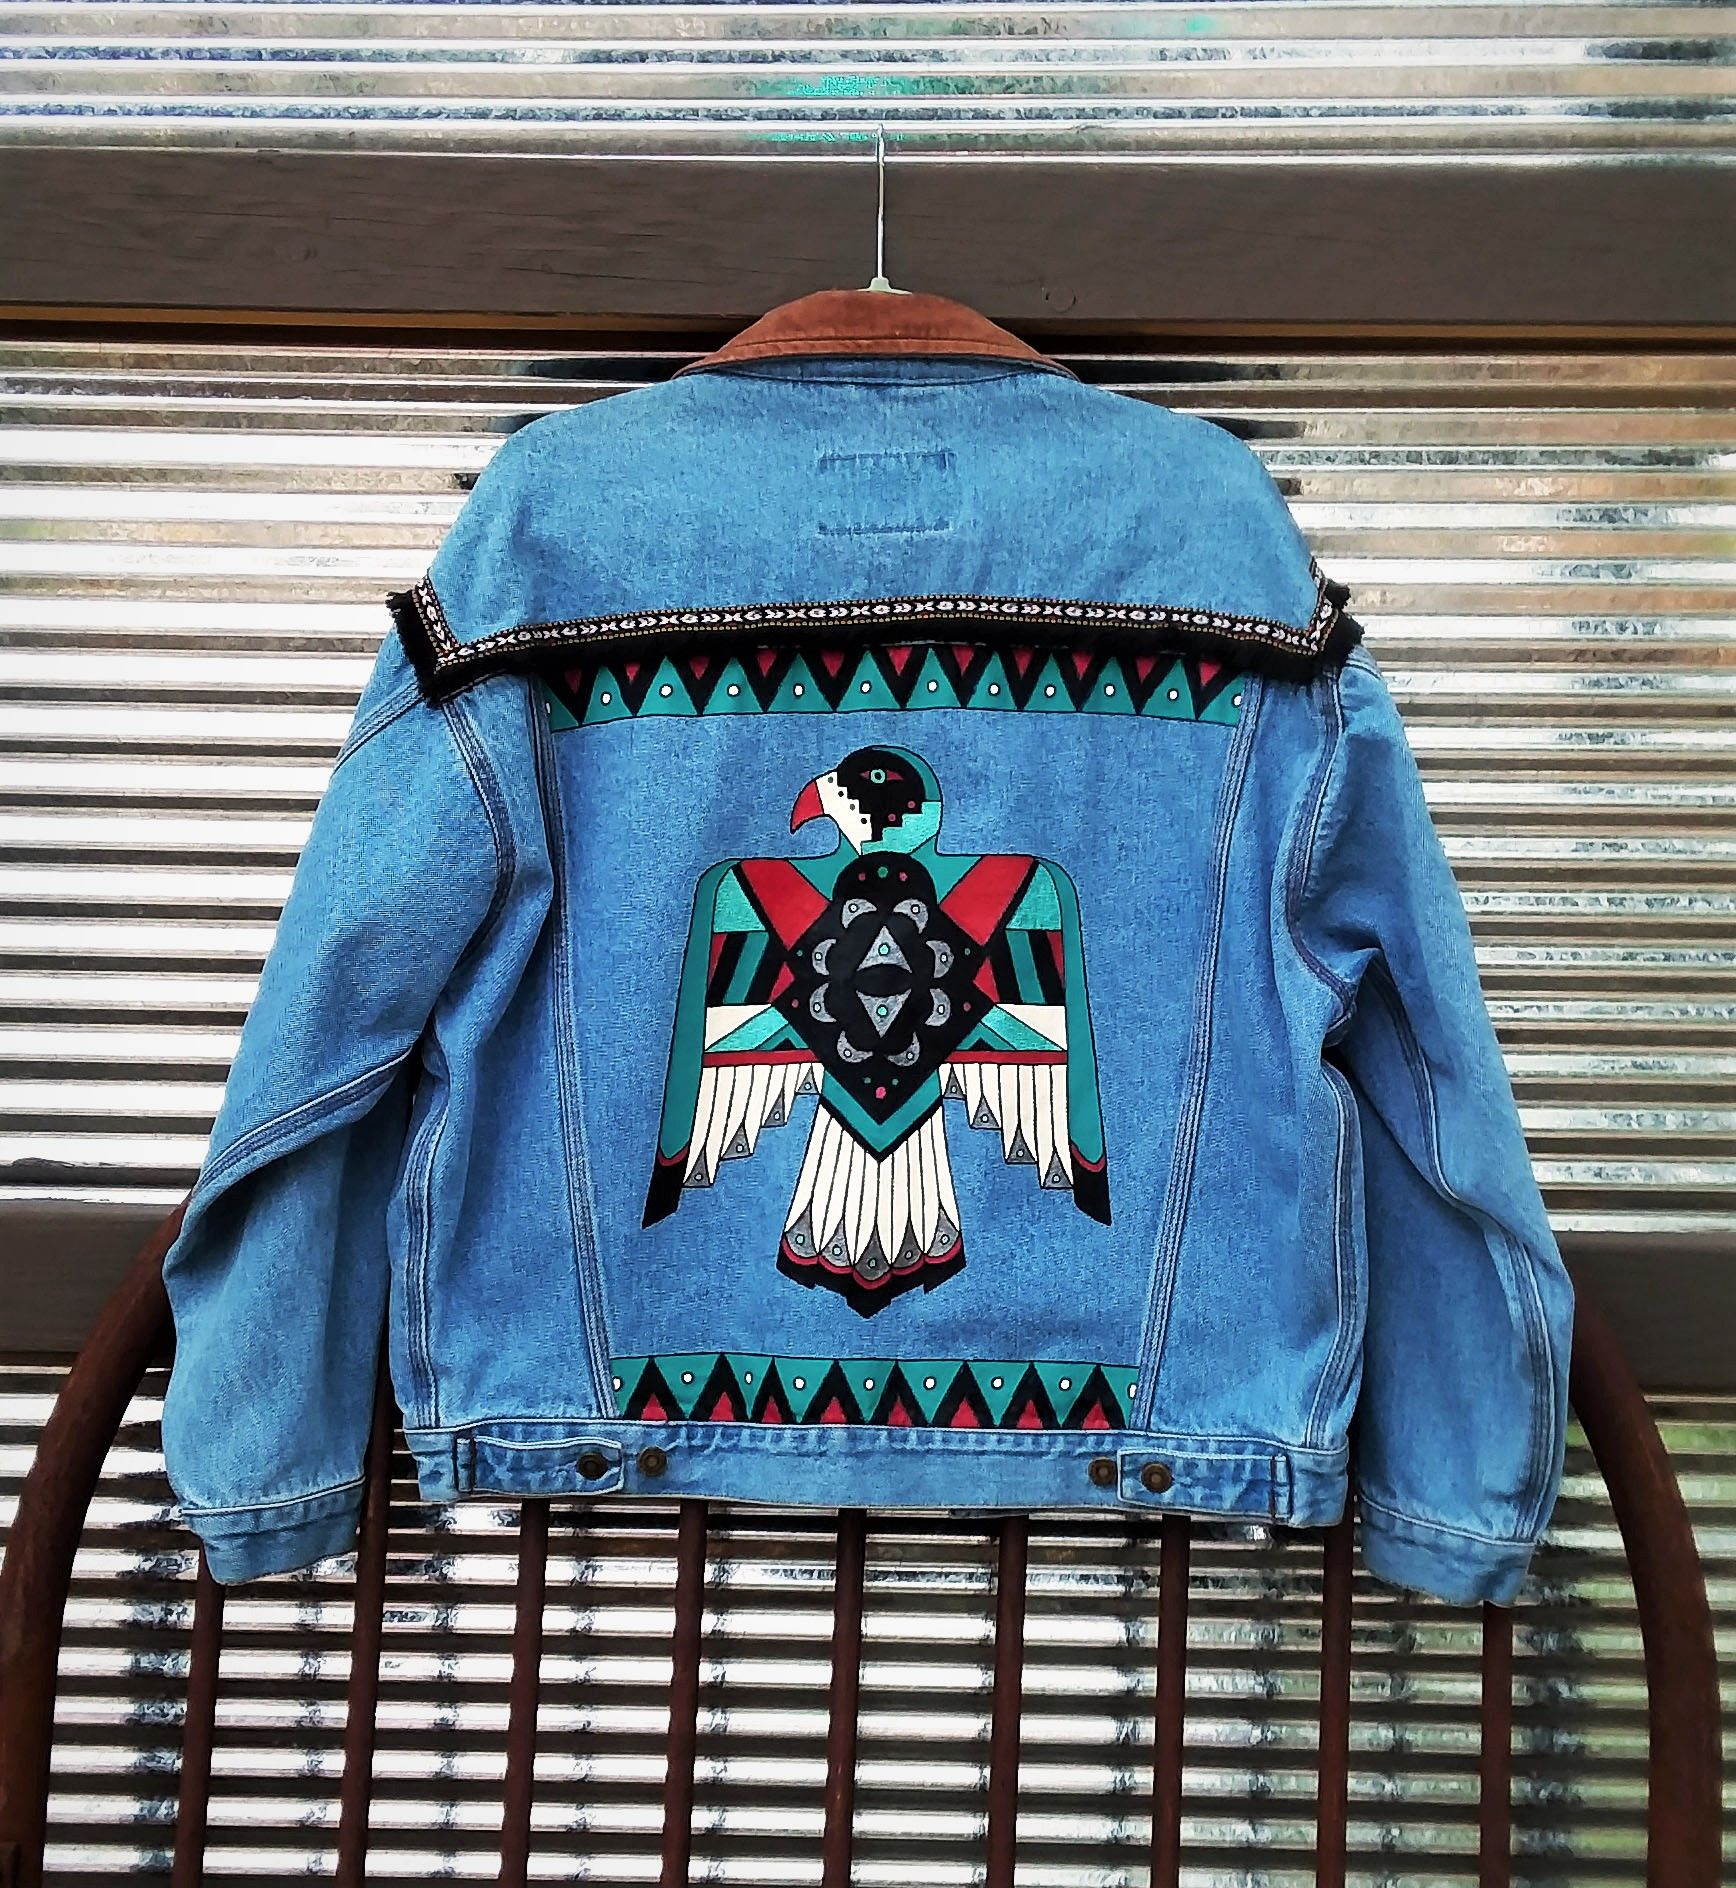 Hand Painted Southwest Thunderbird On Up Cycled Denim Jean Jacket With Leather Collar By Bleud Diy Denim Jacket Painted Denim Jacket Hand Painted Denim Jacket [ 1888 x 1736 Pixel ]